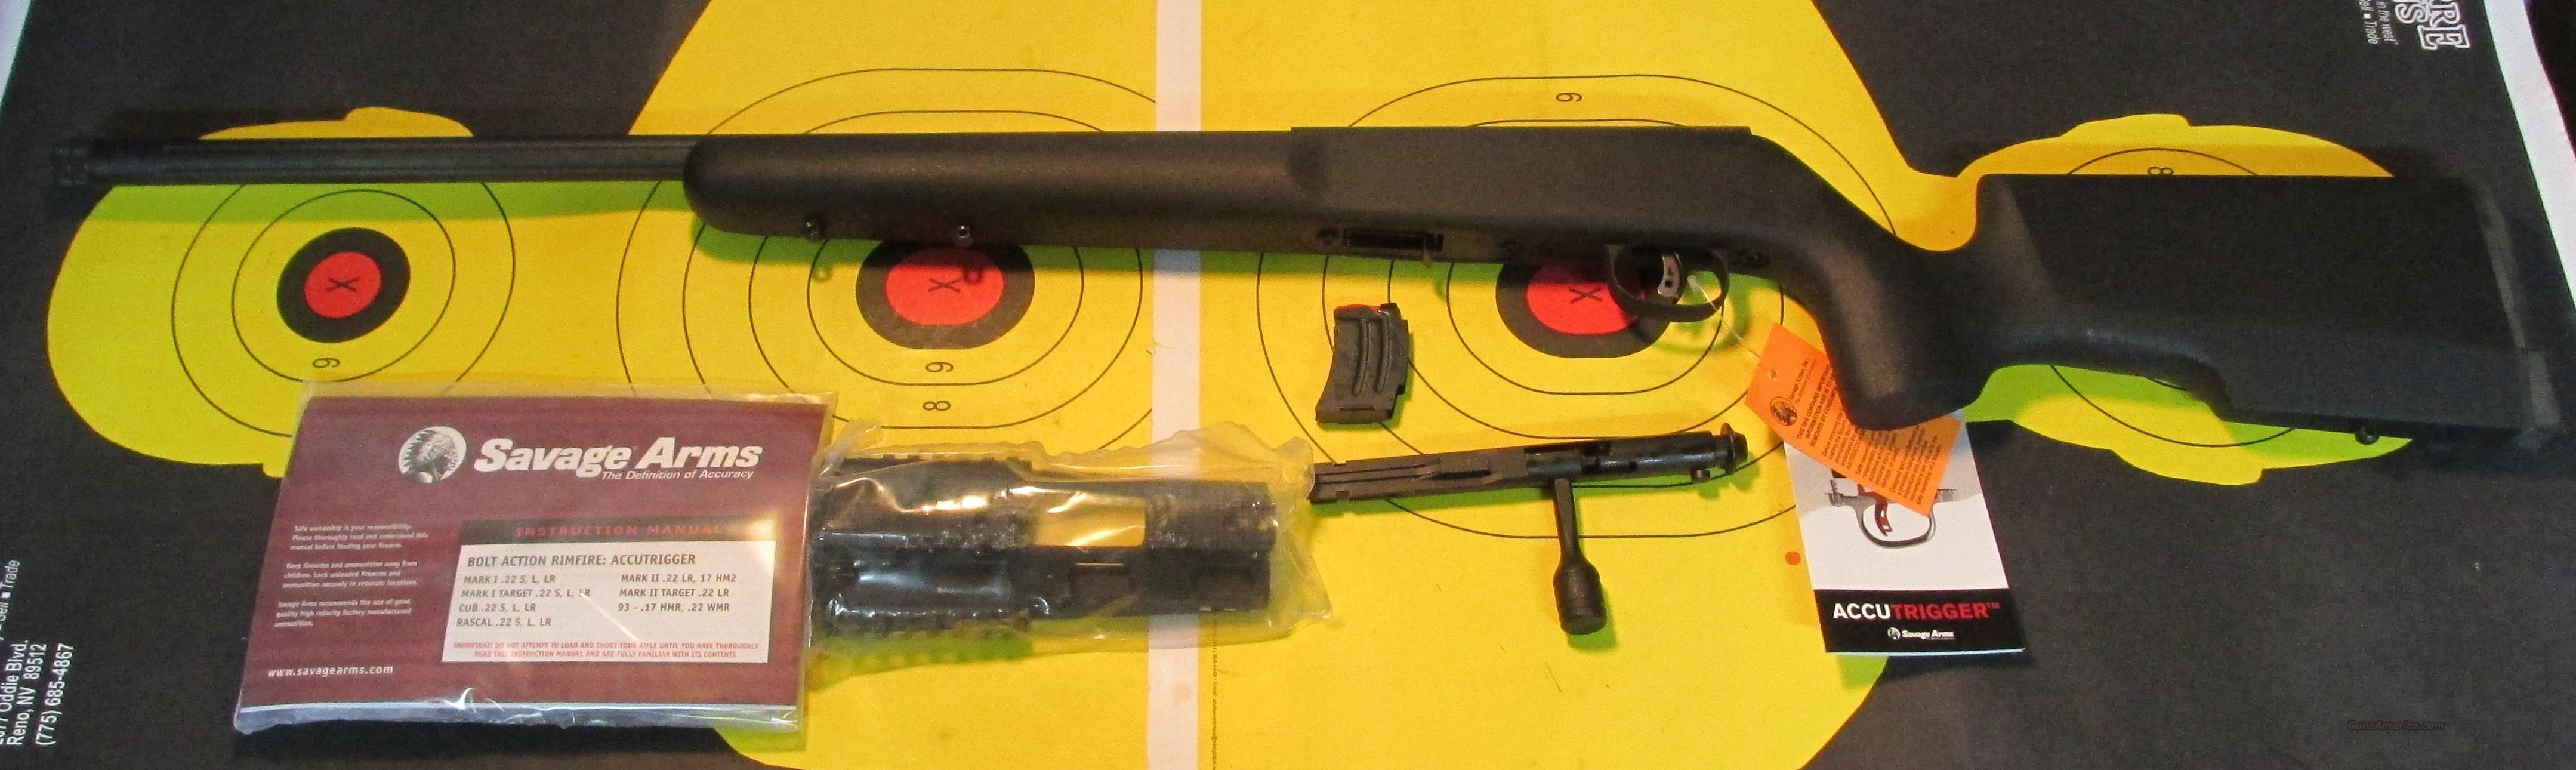 SAVAGE MKII 22LR   Guns > Rifles > Savage Rifles > Accutrigger Models > Sporting